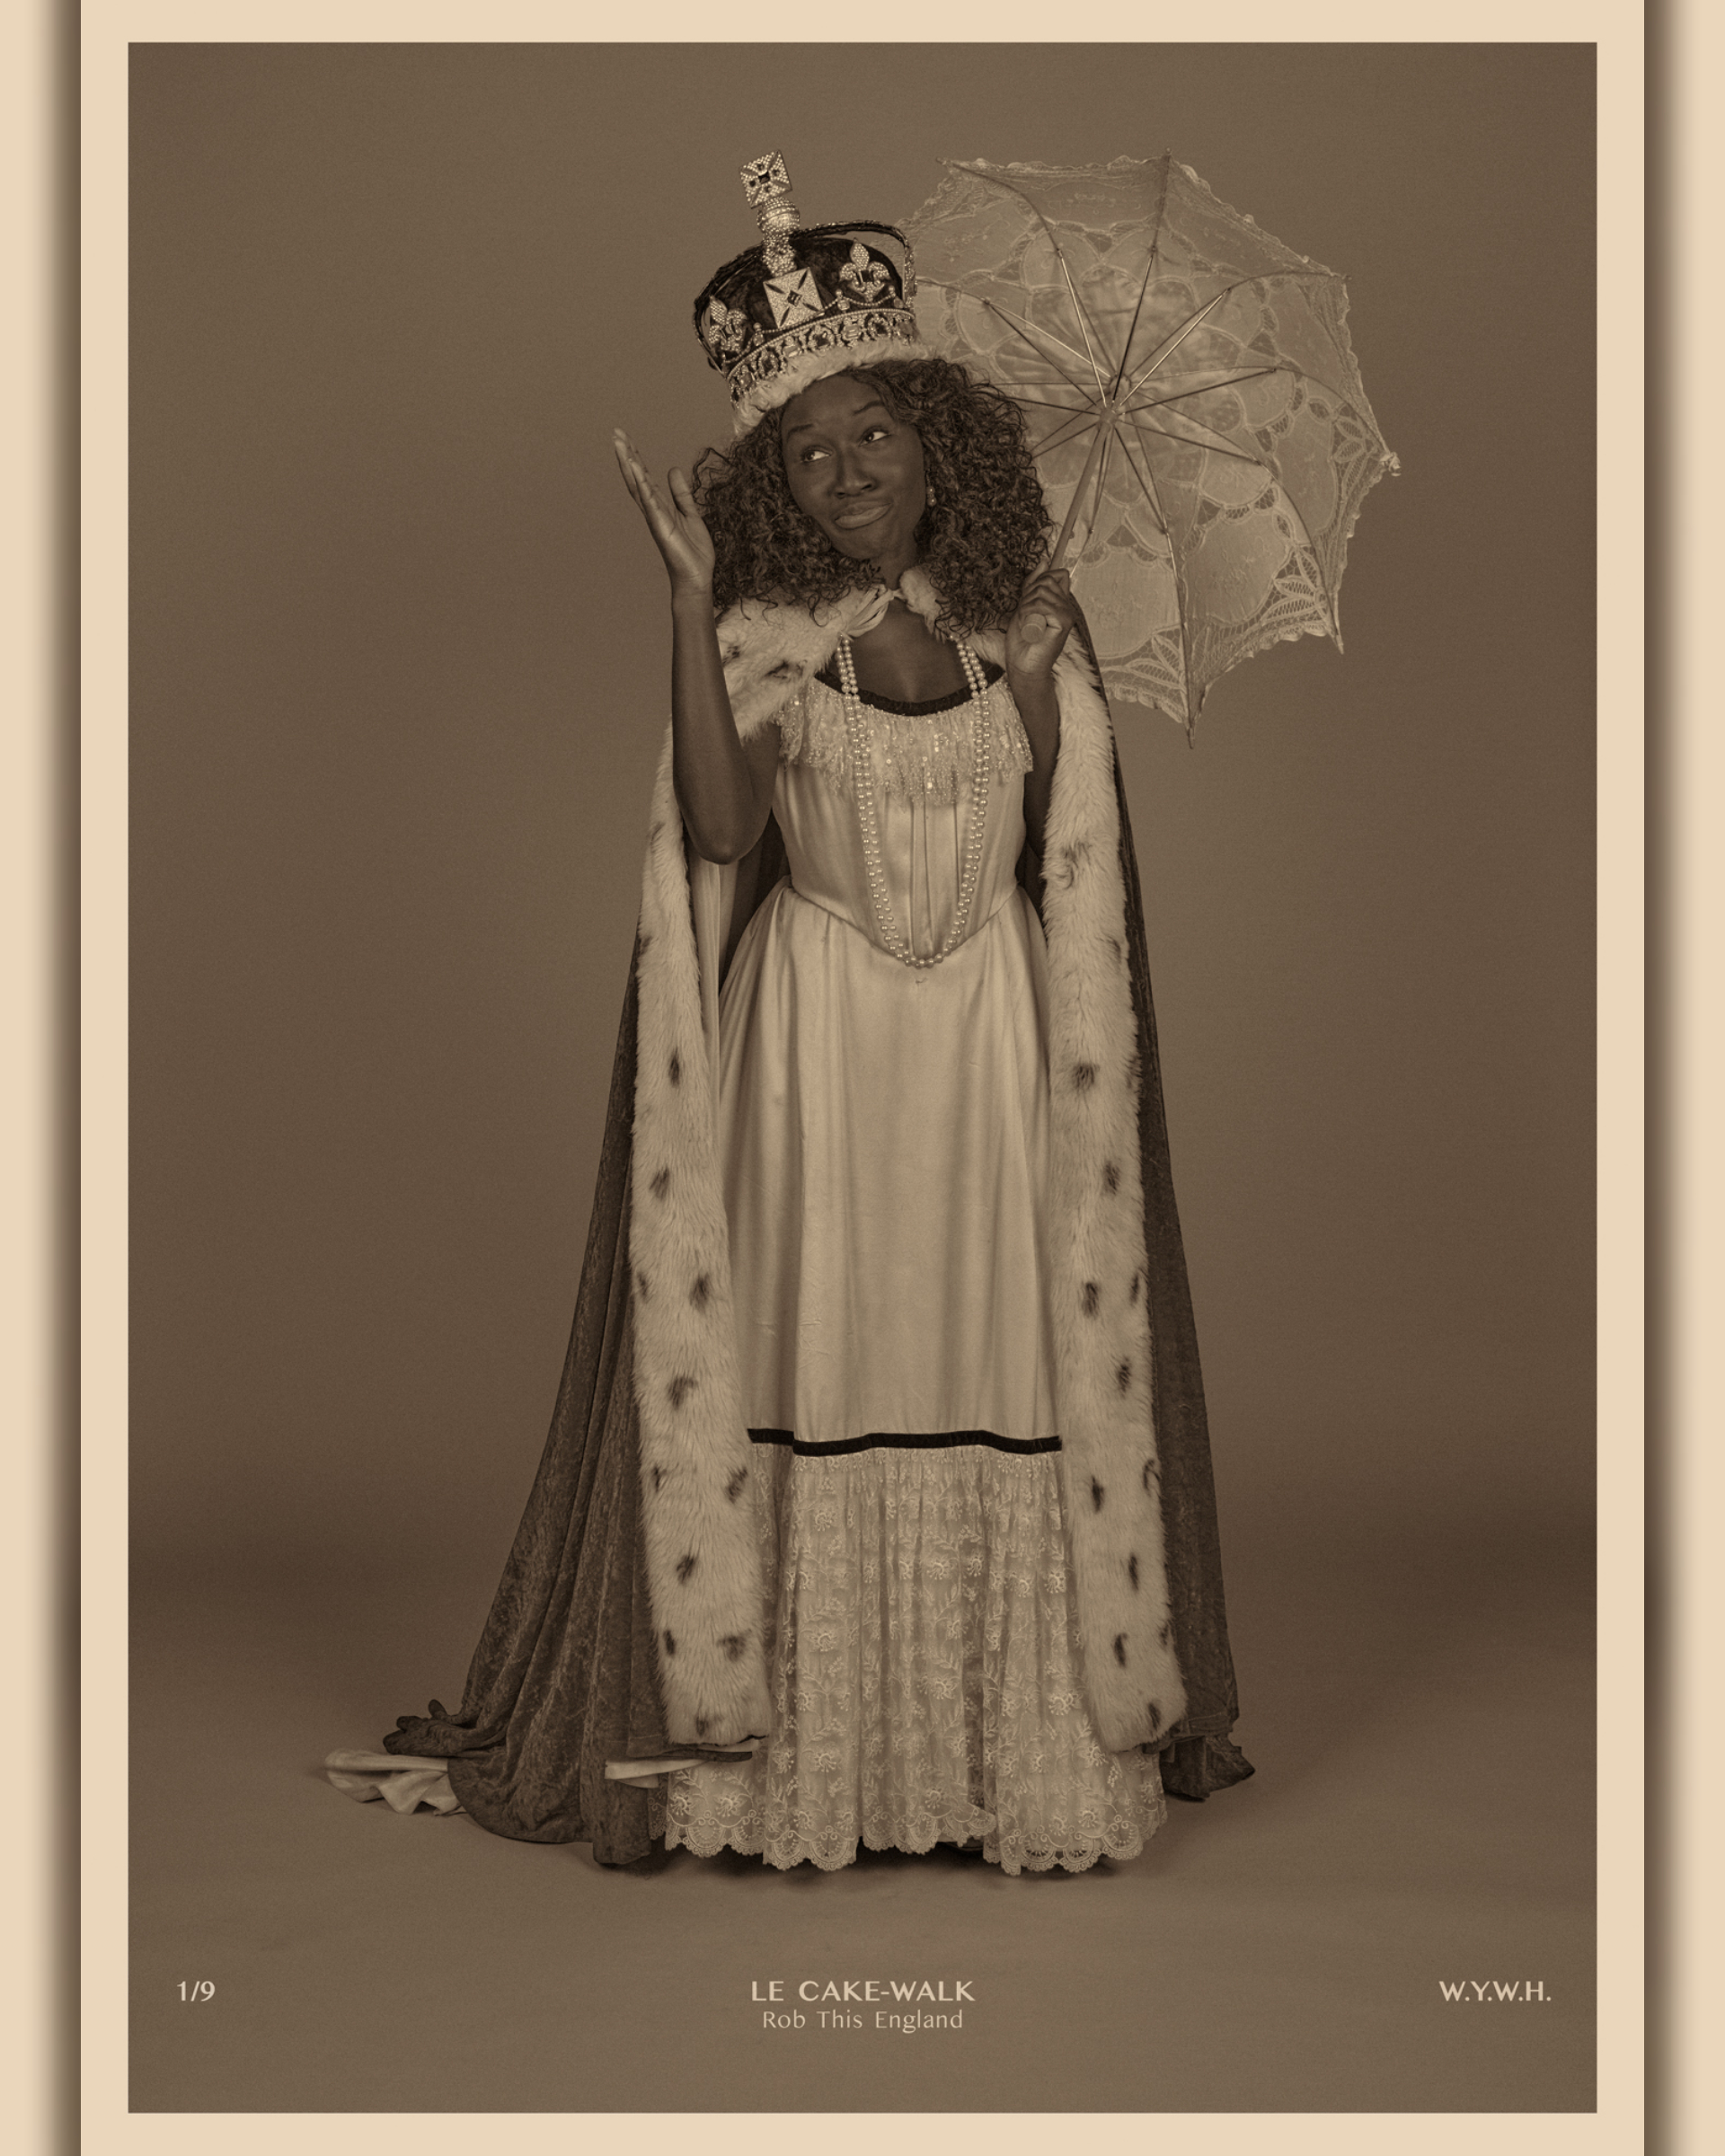 A woman dressed in a Victorian dress, with a royal robe and crown holding an antique umbrella, gesturing in amusement at her pose